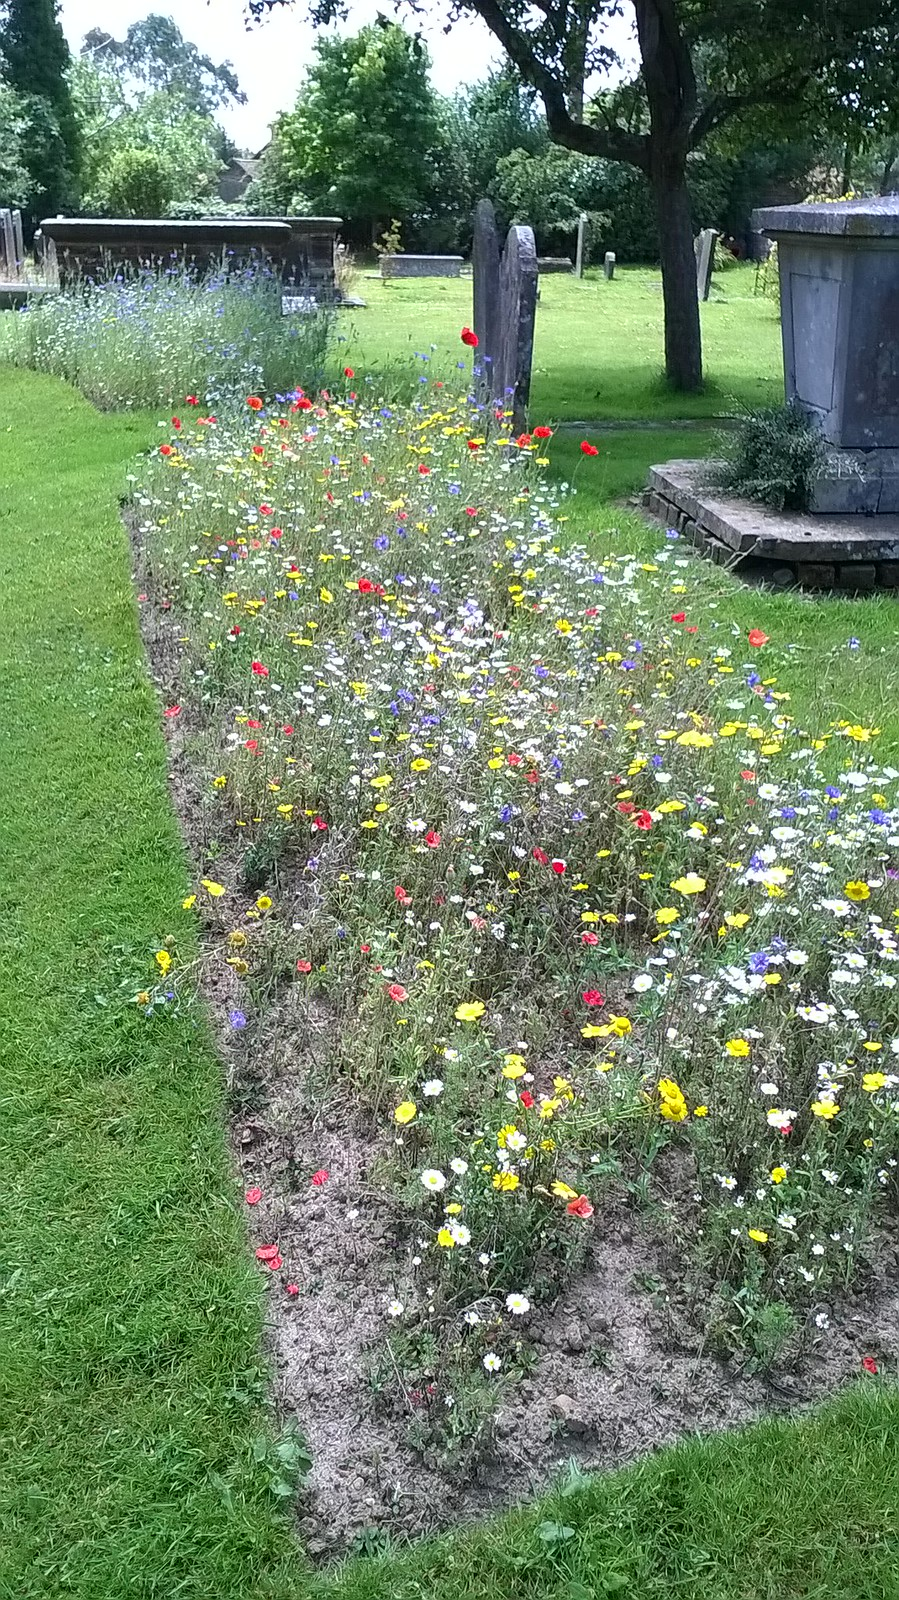 Churchyard West Hoathly Flowerbeds amongst the gravestones.